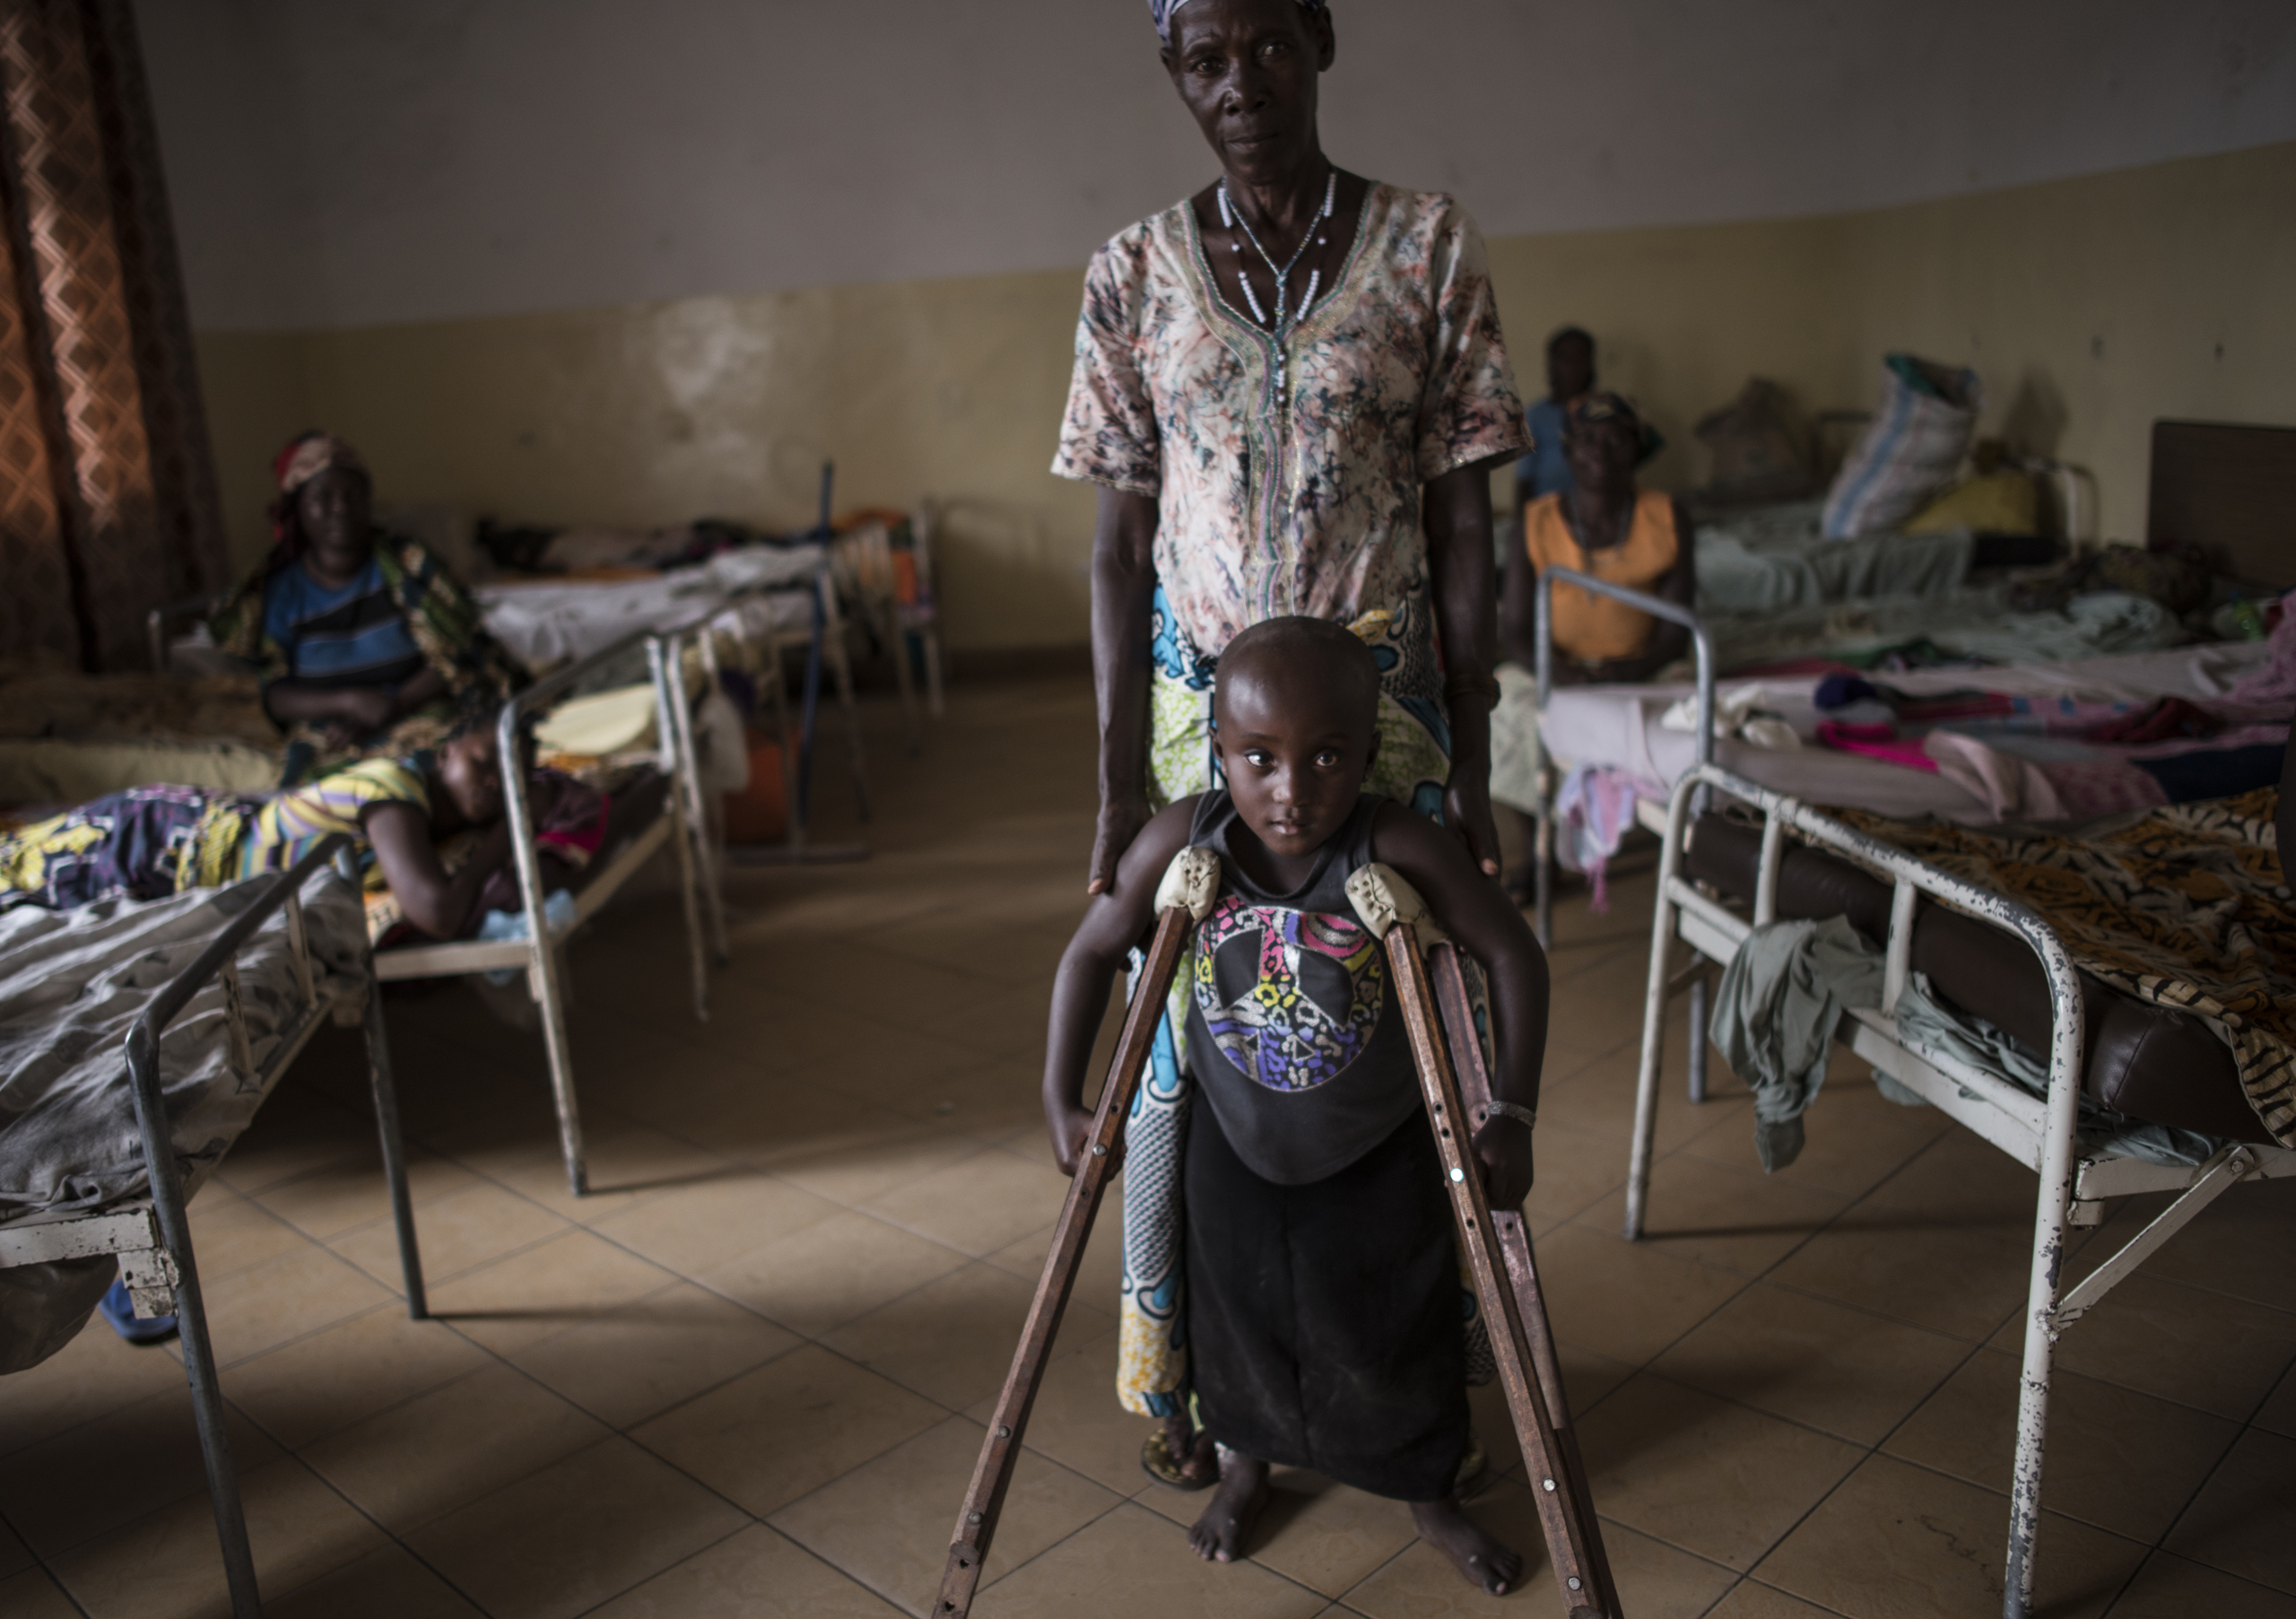 Kanyere Neema, 7, with her grandmother, Ndahondi Domina, 53, in the Heal Africa hospital in Goma, the Democratic Republic of Congo, Dec. 5, 2015.Two years prior, Kanyere's village of Ishasha was attacked by armed men, and her parents were killed in front of her. She was raped so many times by different men that she was left paralyzed, and stopped speaking.